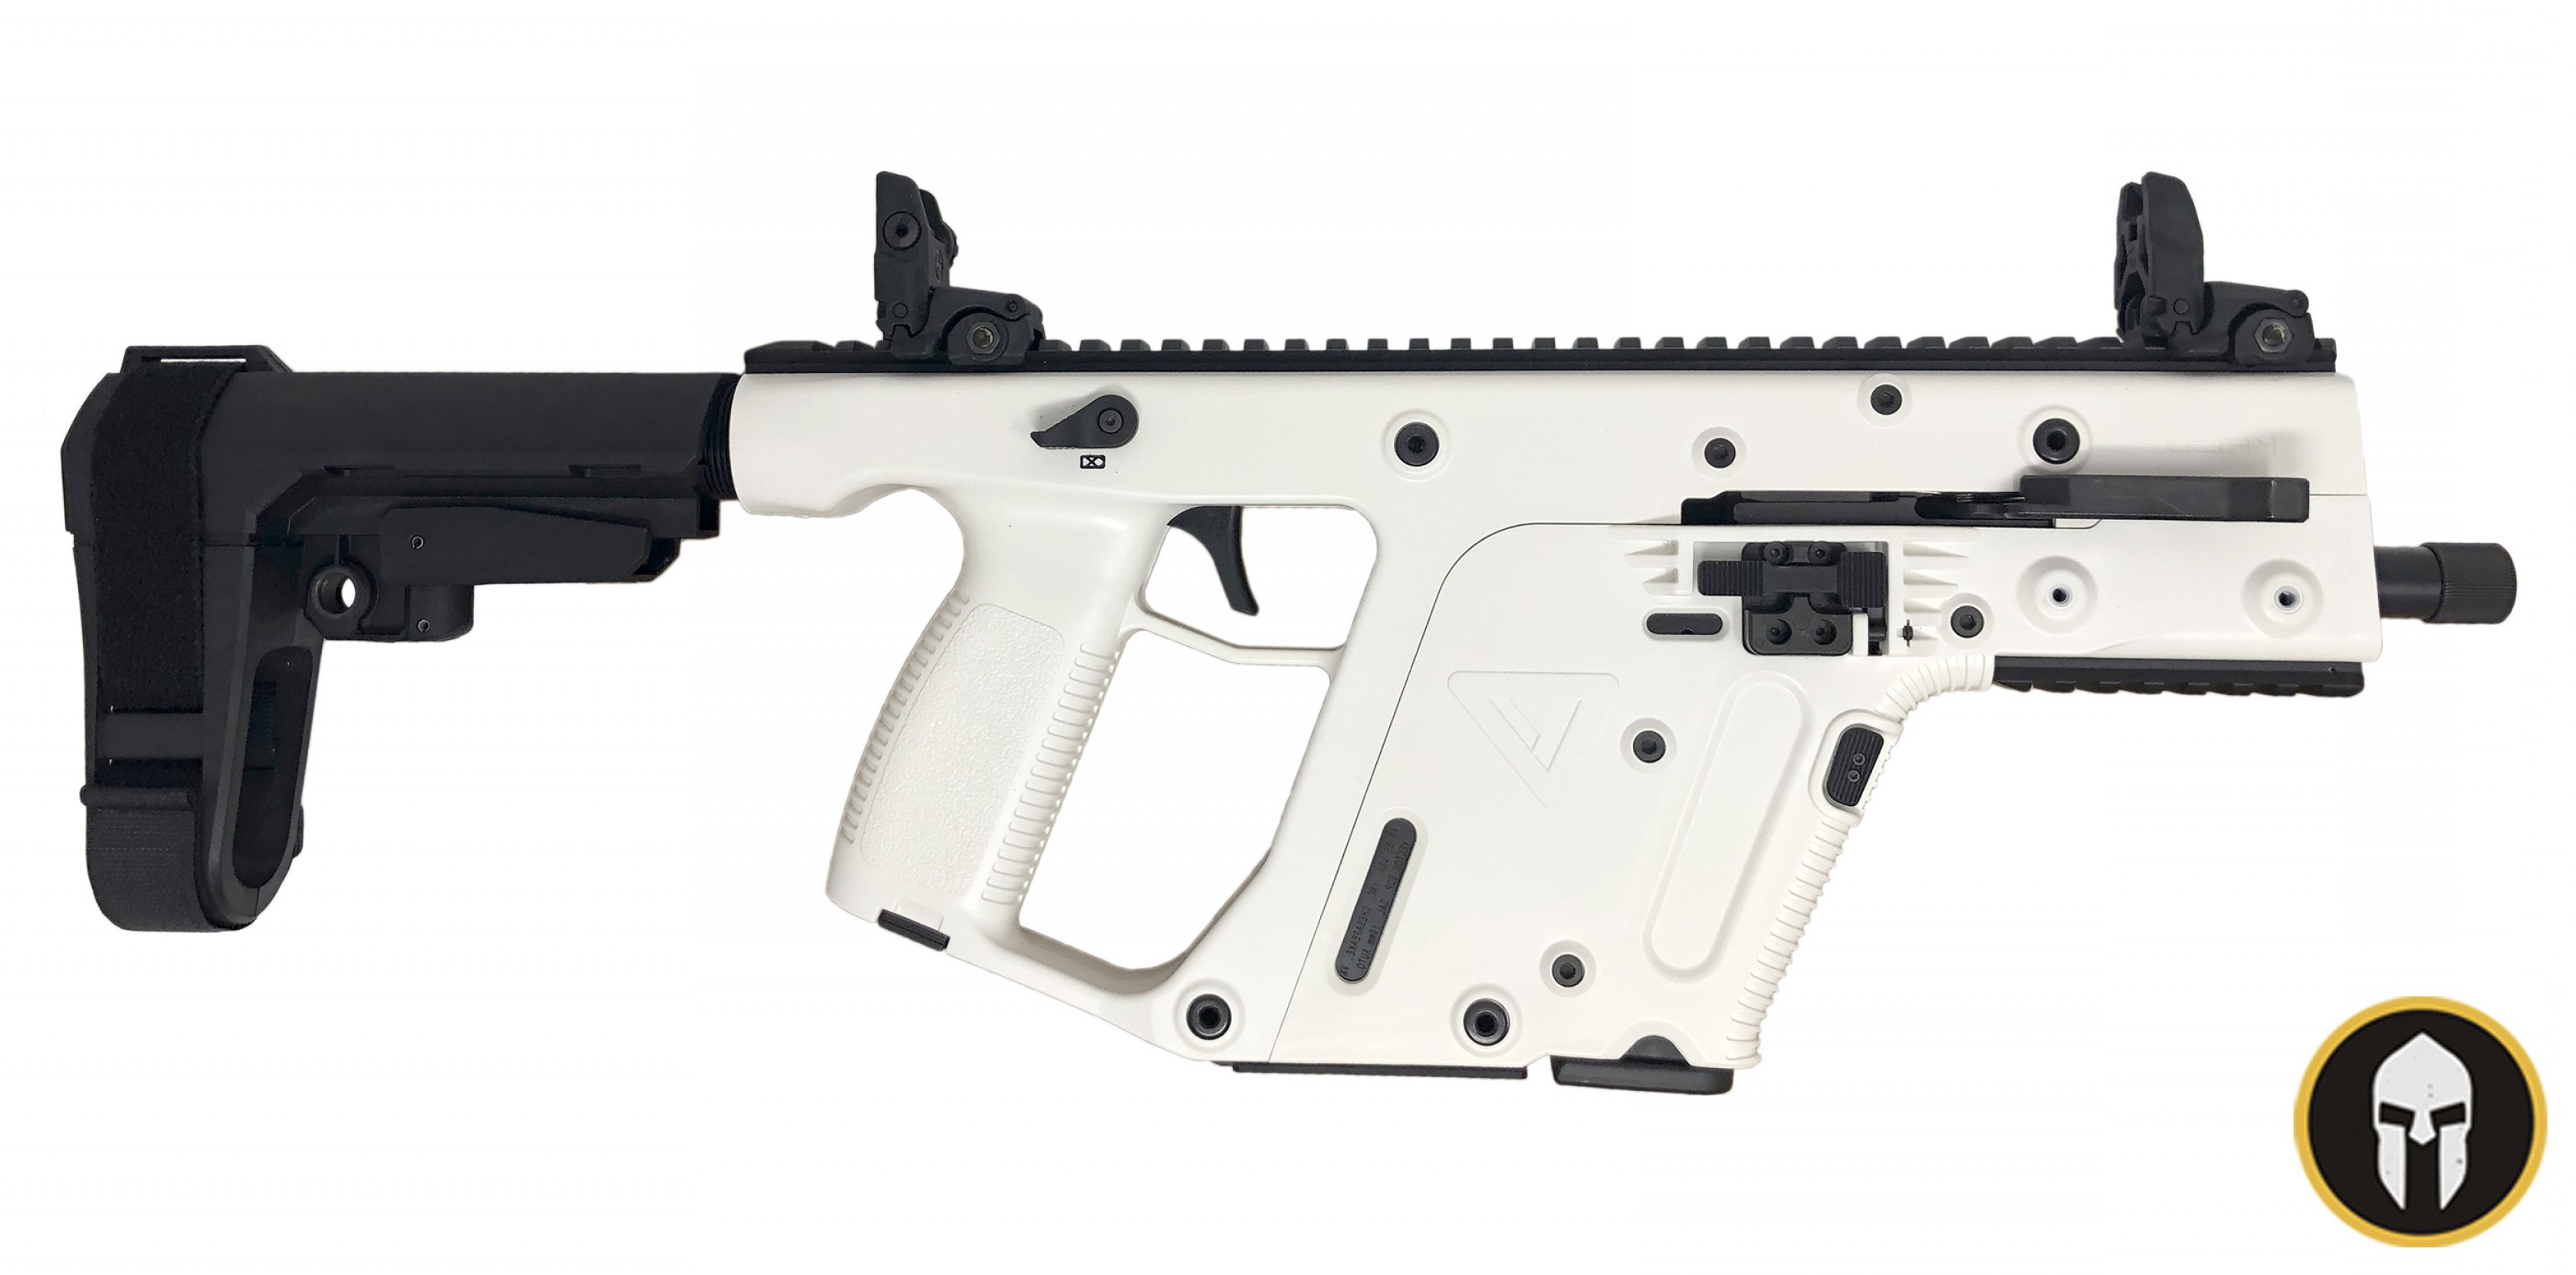 Kriss Vector Alpine: Kriss Vector Sdp Gen Ii Alpine White With Sb Tactical Sba Brace